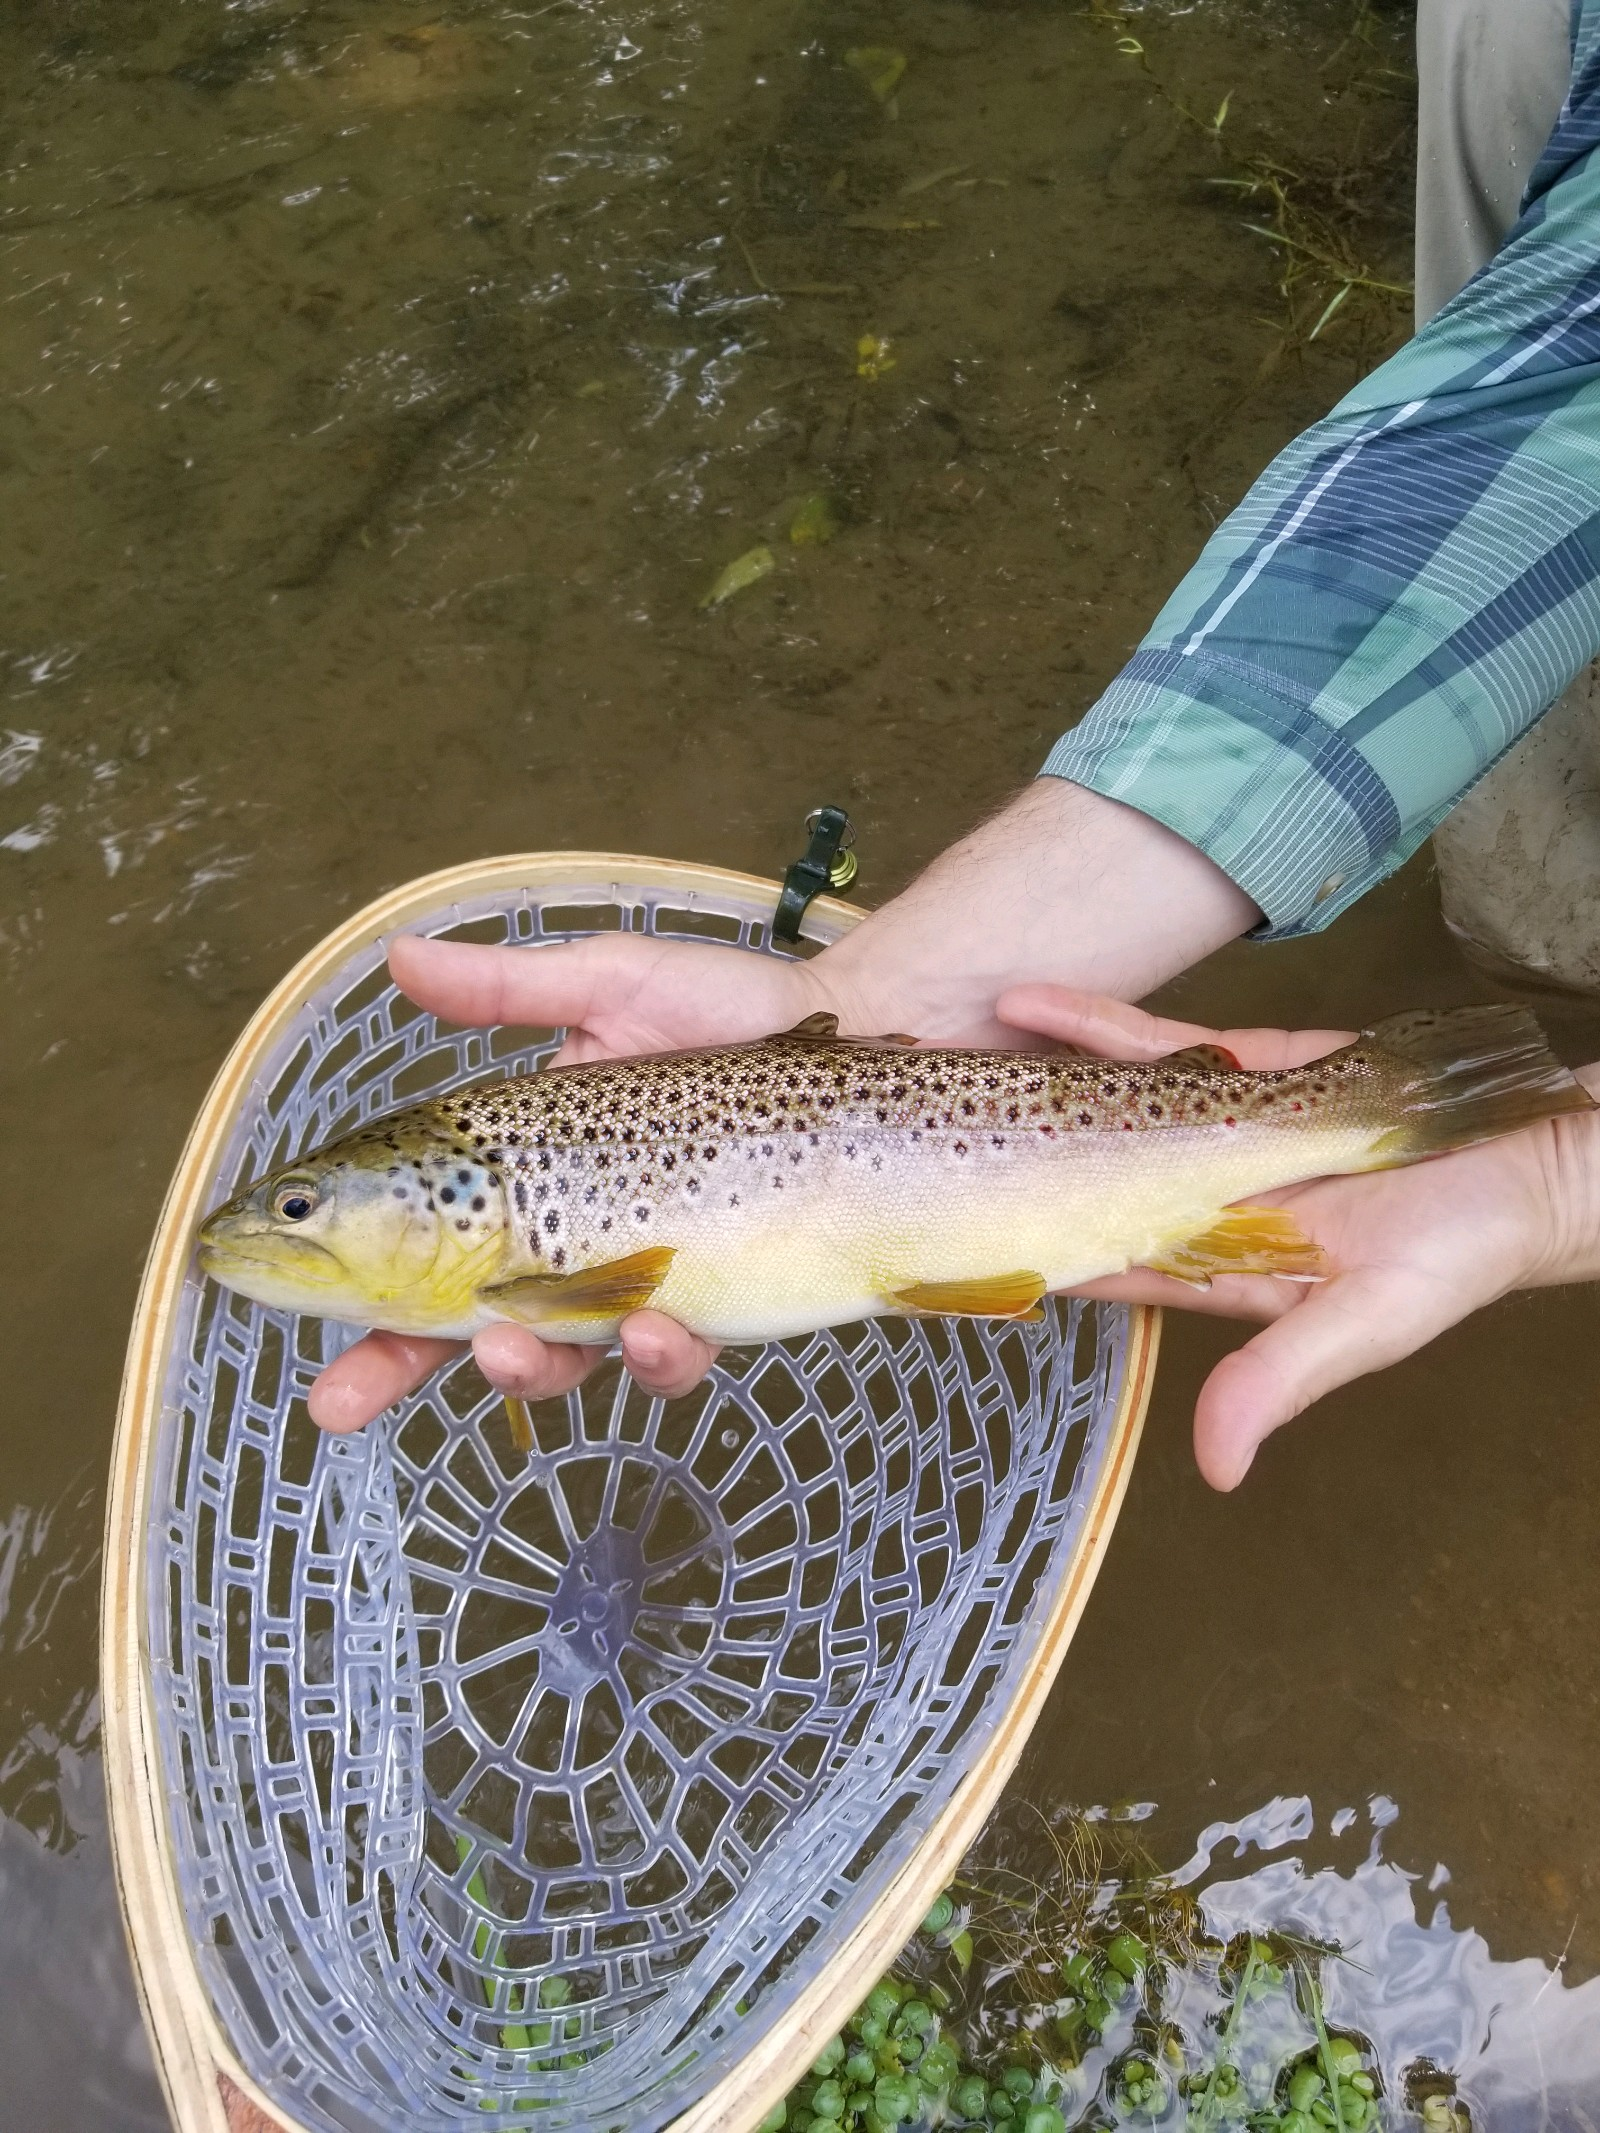 Brian landed a wild Mossy Creek Brownie